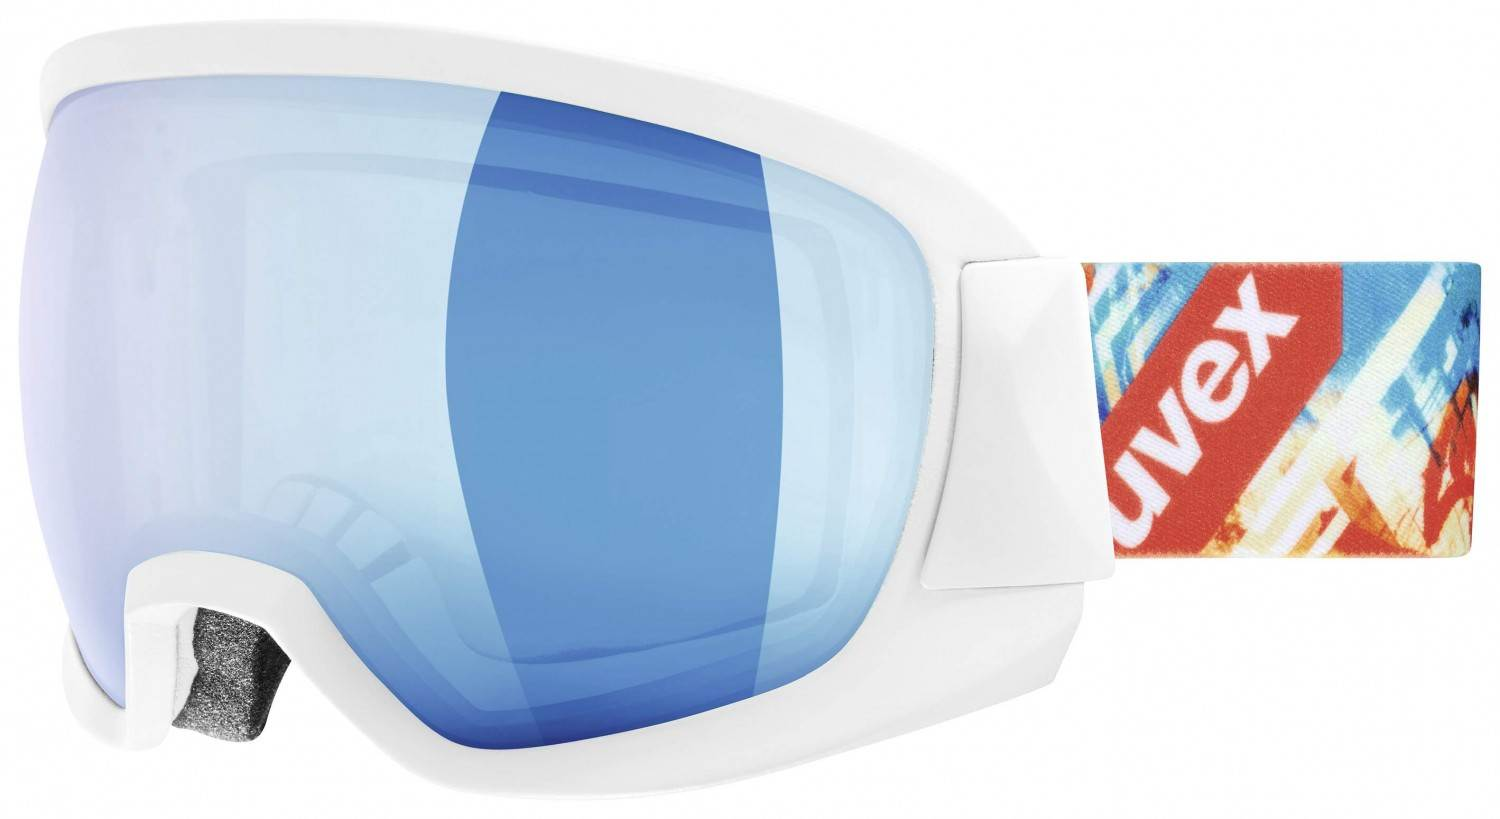 uvex Contest Full Mirror Skibrille (Farbe: 1126 white mat, mirror blue/clear) Sale Angebote Groß Gaglow